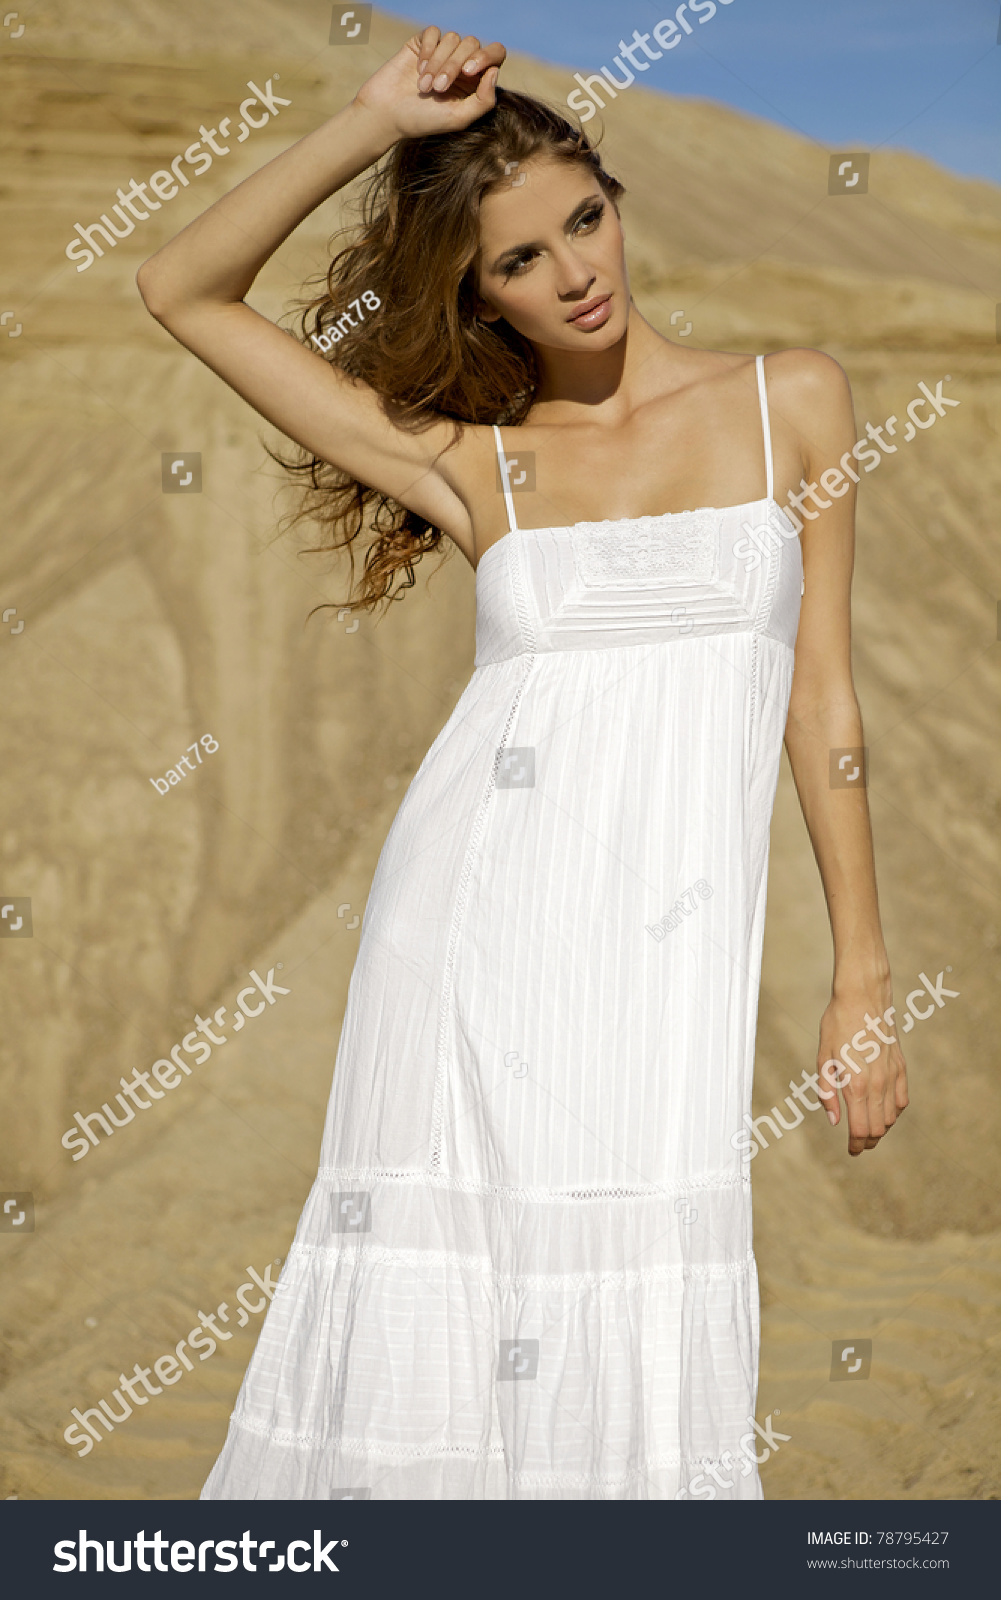 Beautiful Sensuality Teen Girl With Long Hair: Beautiful Sensuality Brunette Girl In White Dress Over